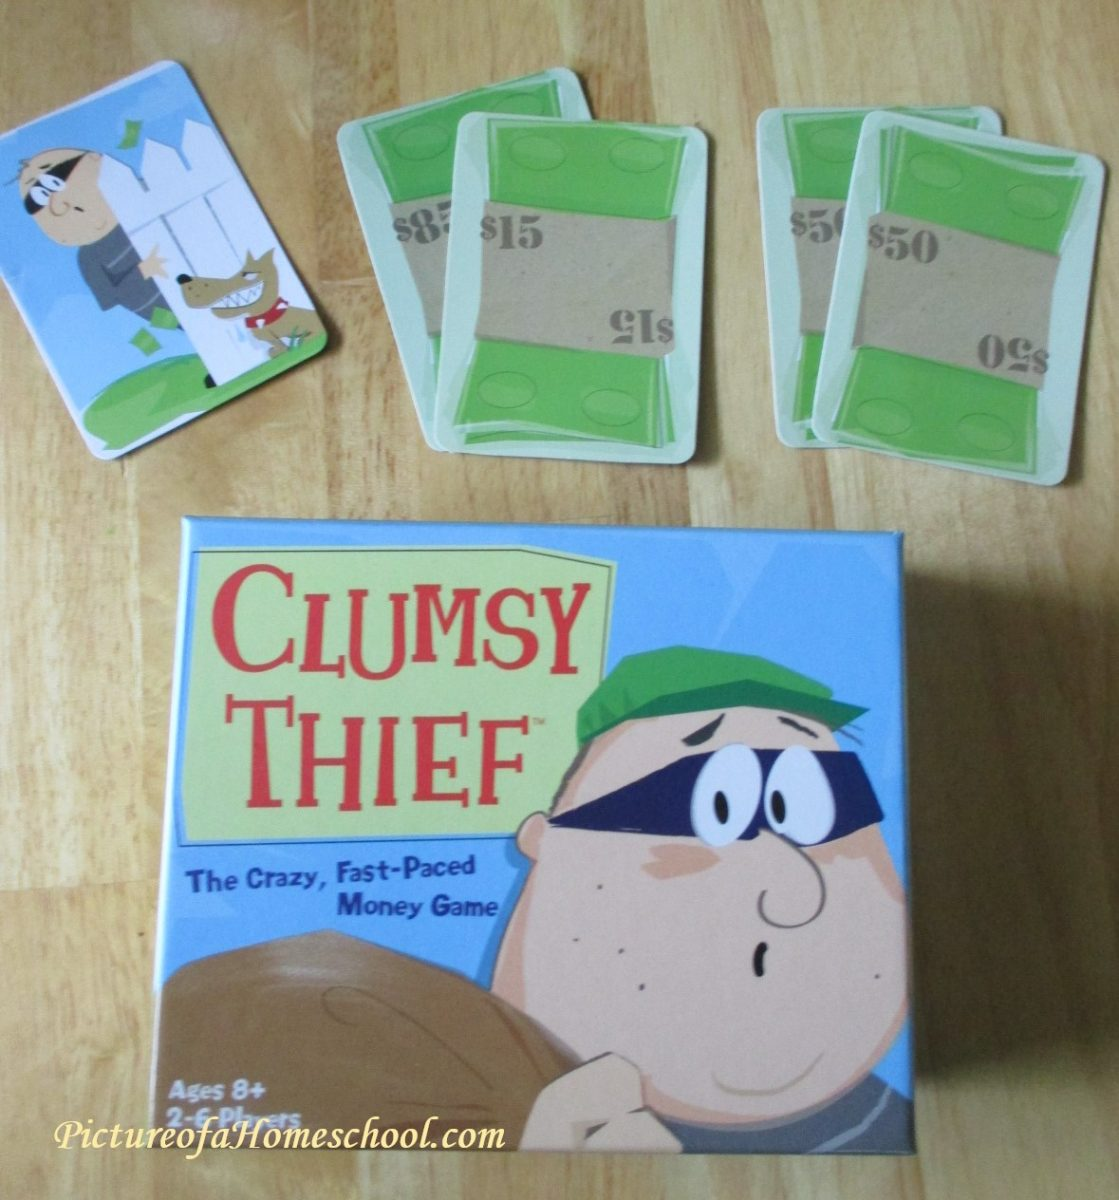 Clumsy Thief cover and card math game